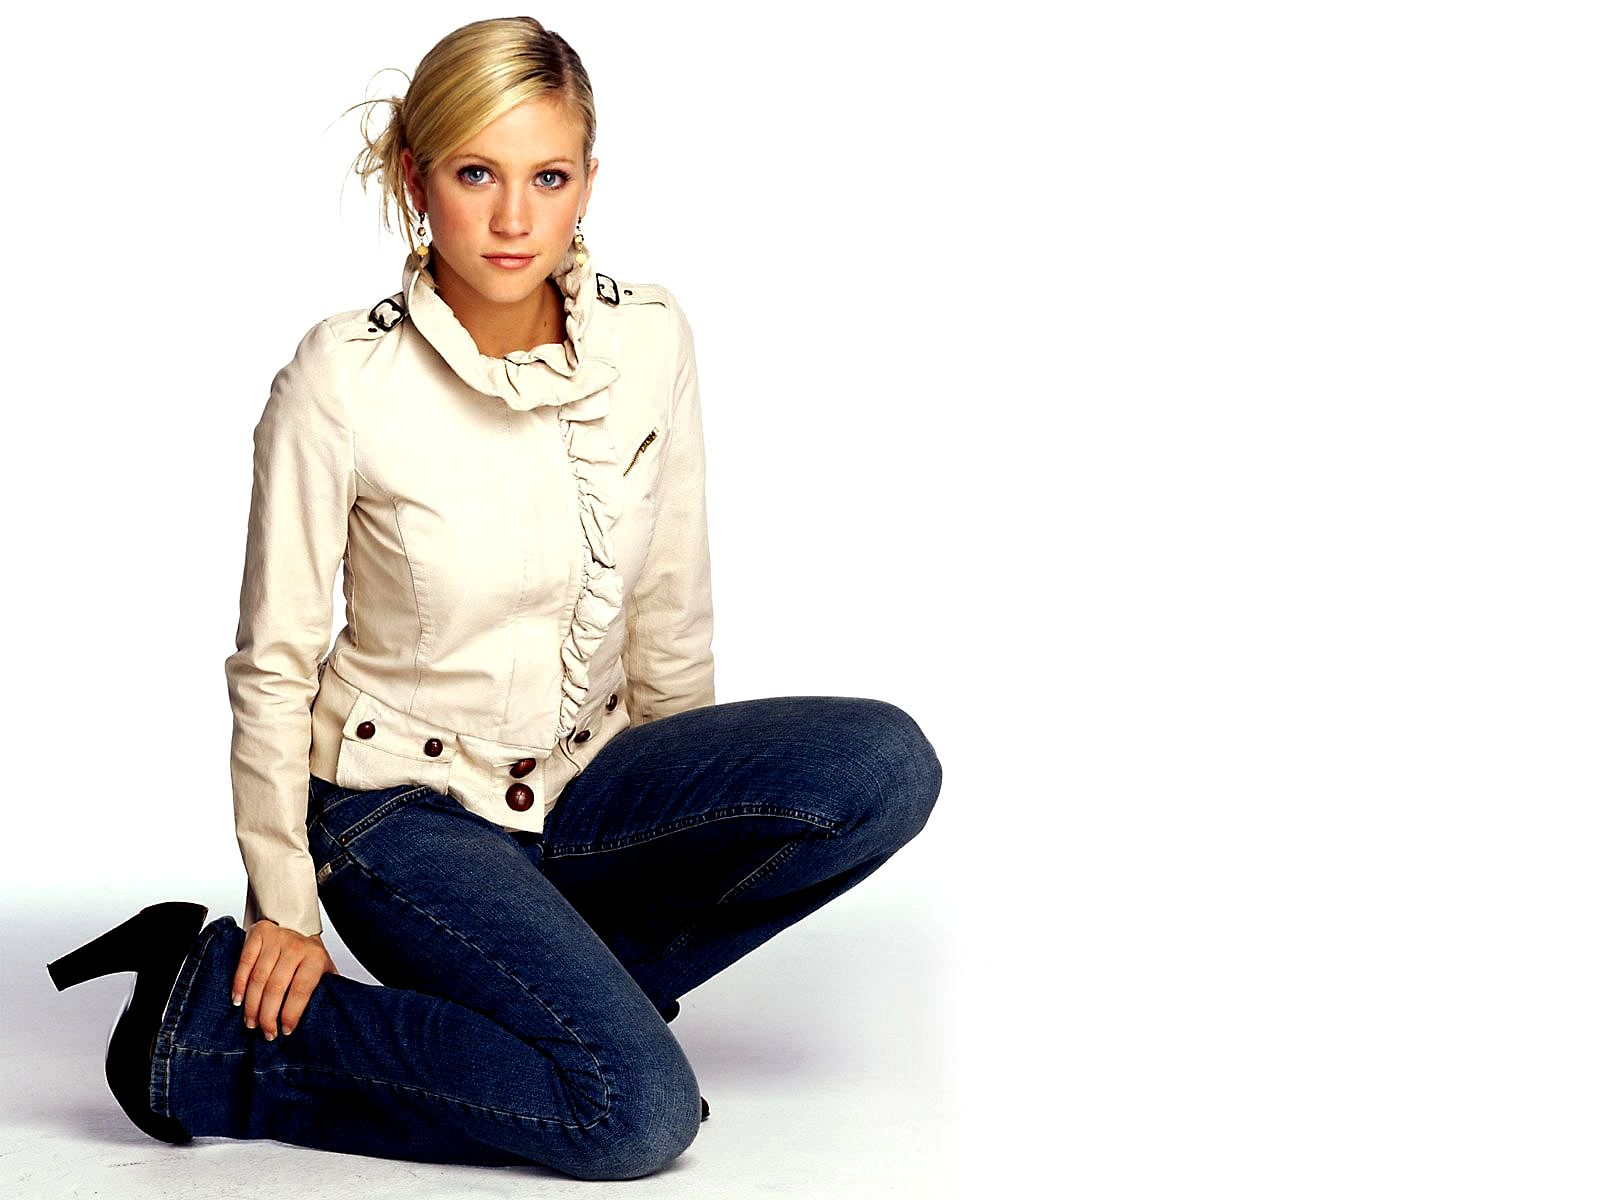 1600x1200 - Brittany Snow Wallpapers 26